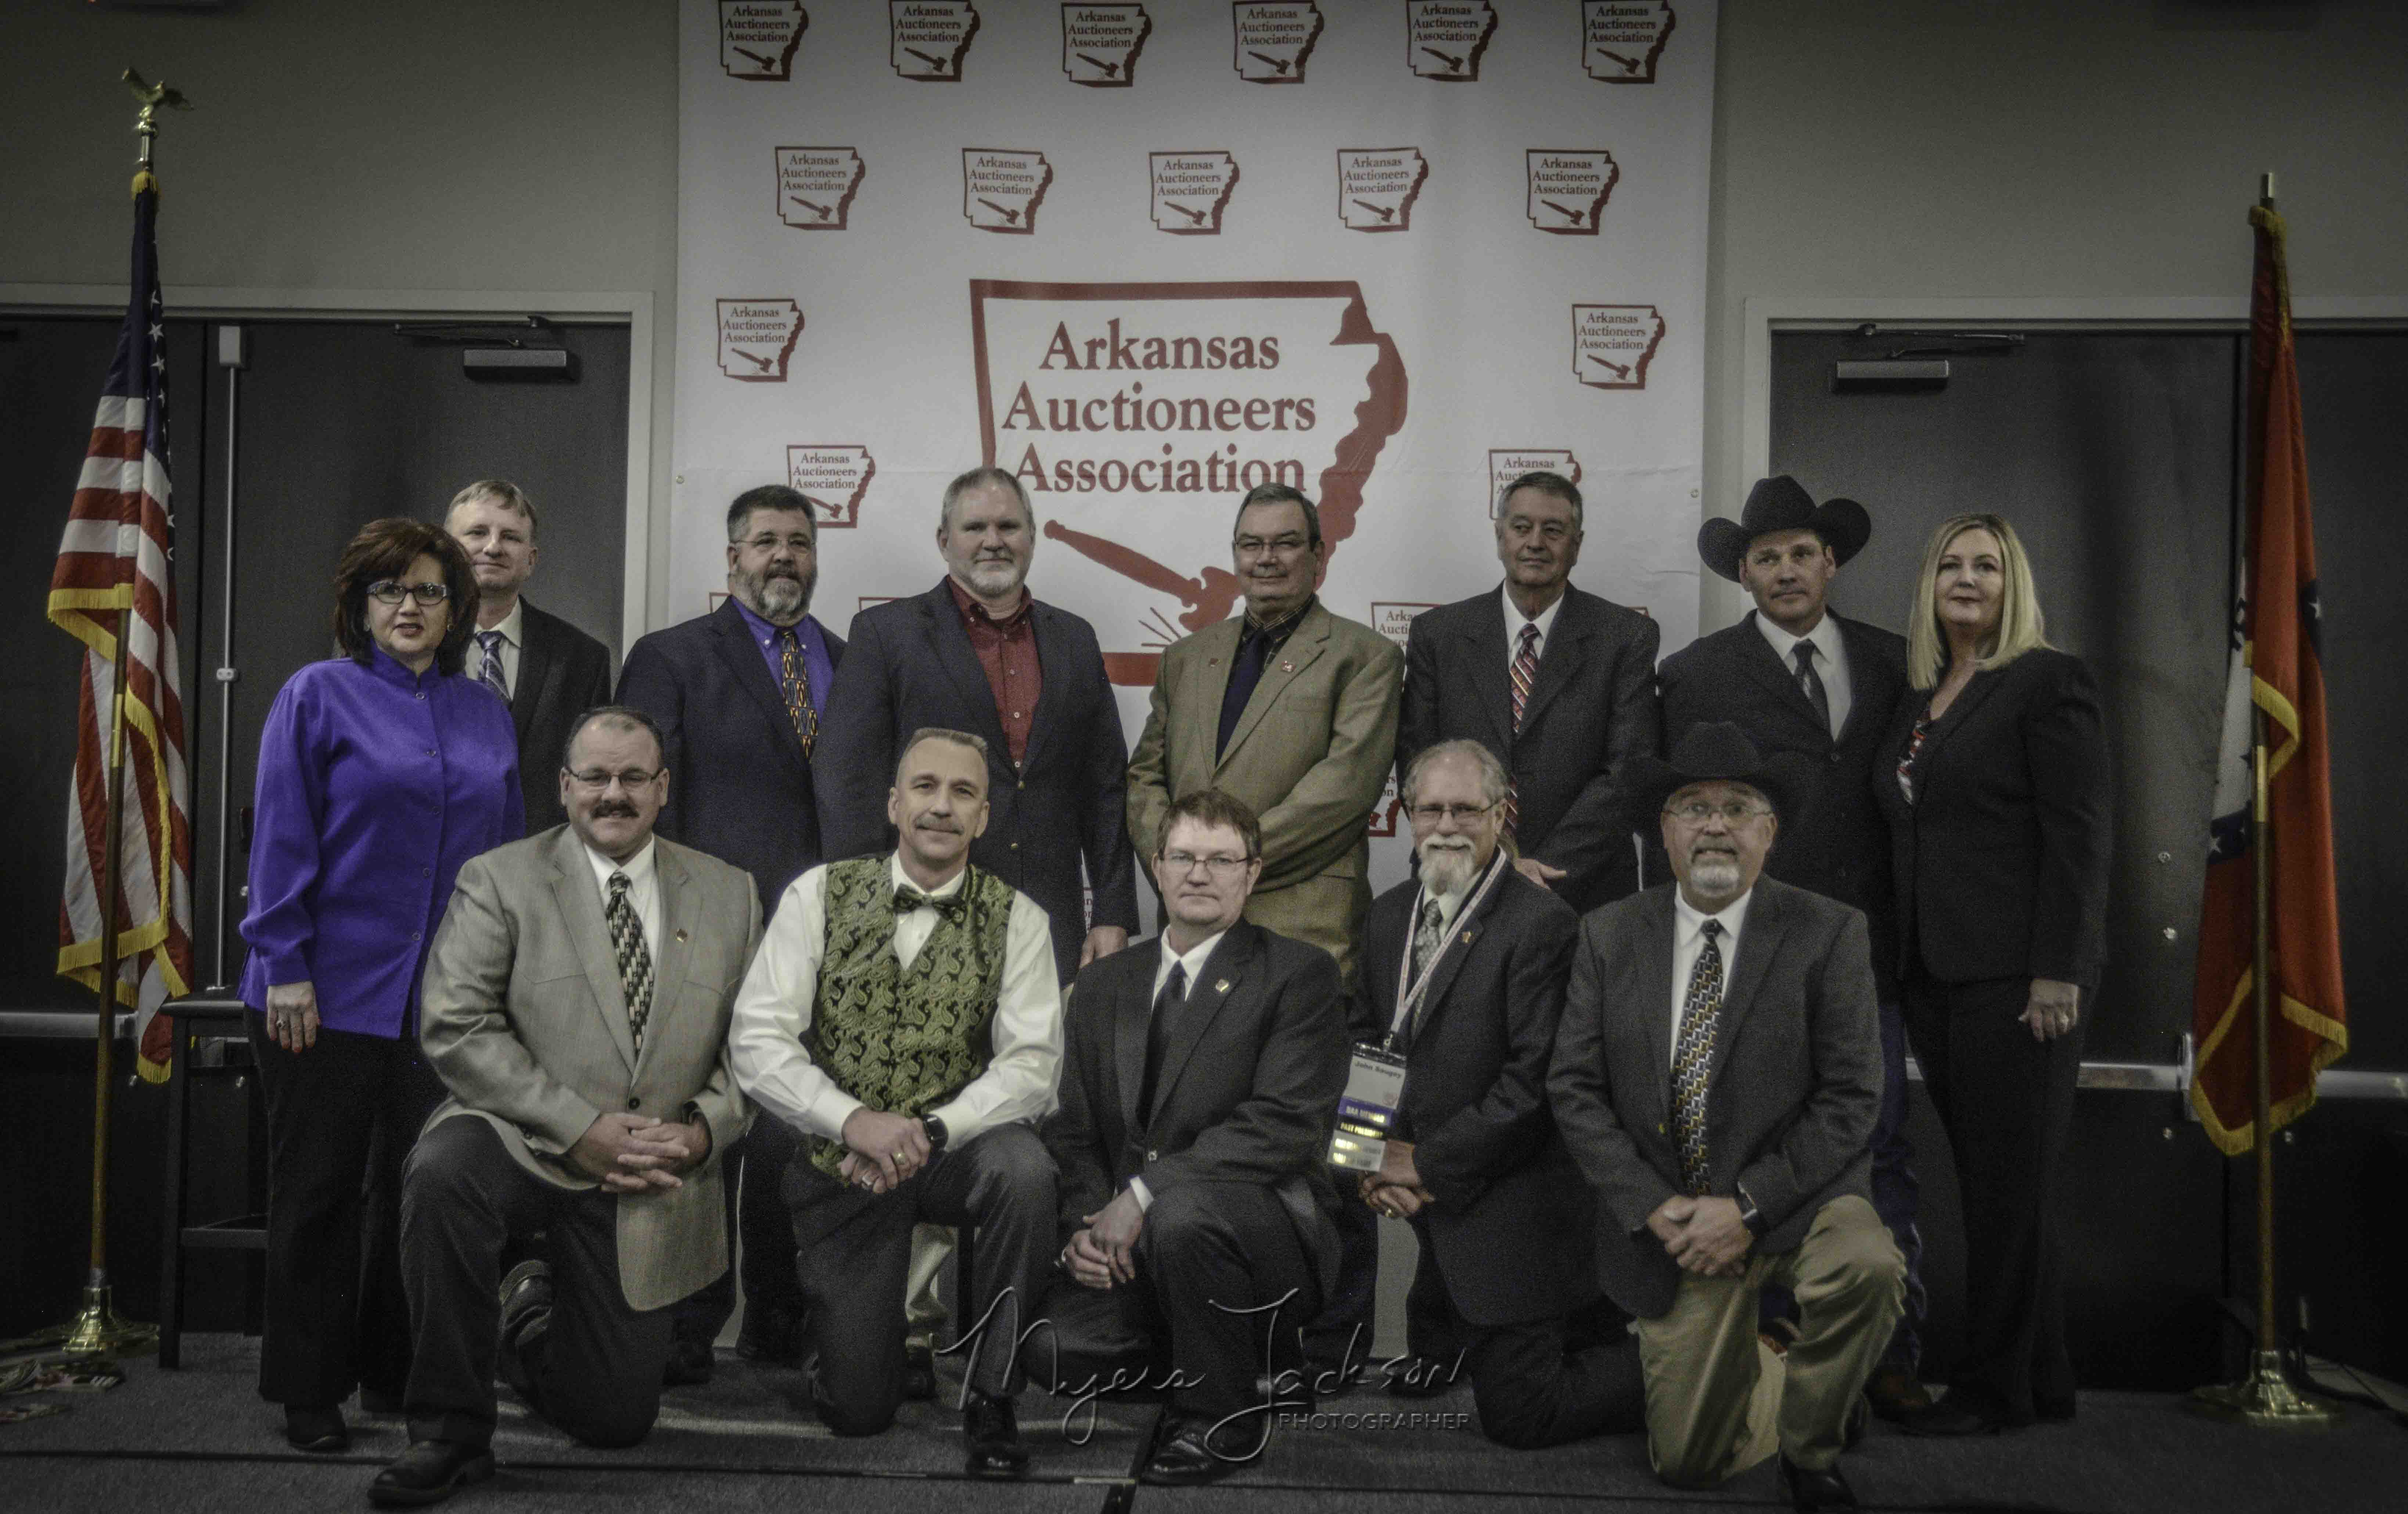 Arkansas Auctioneers Association 2018 Convention